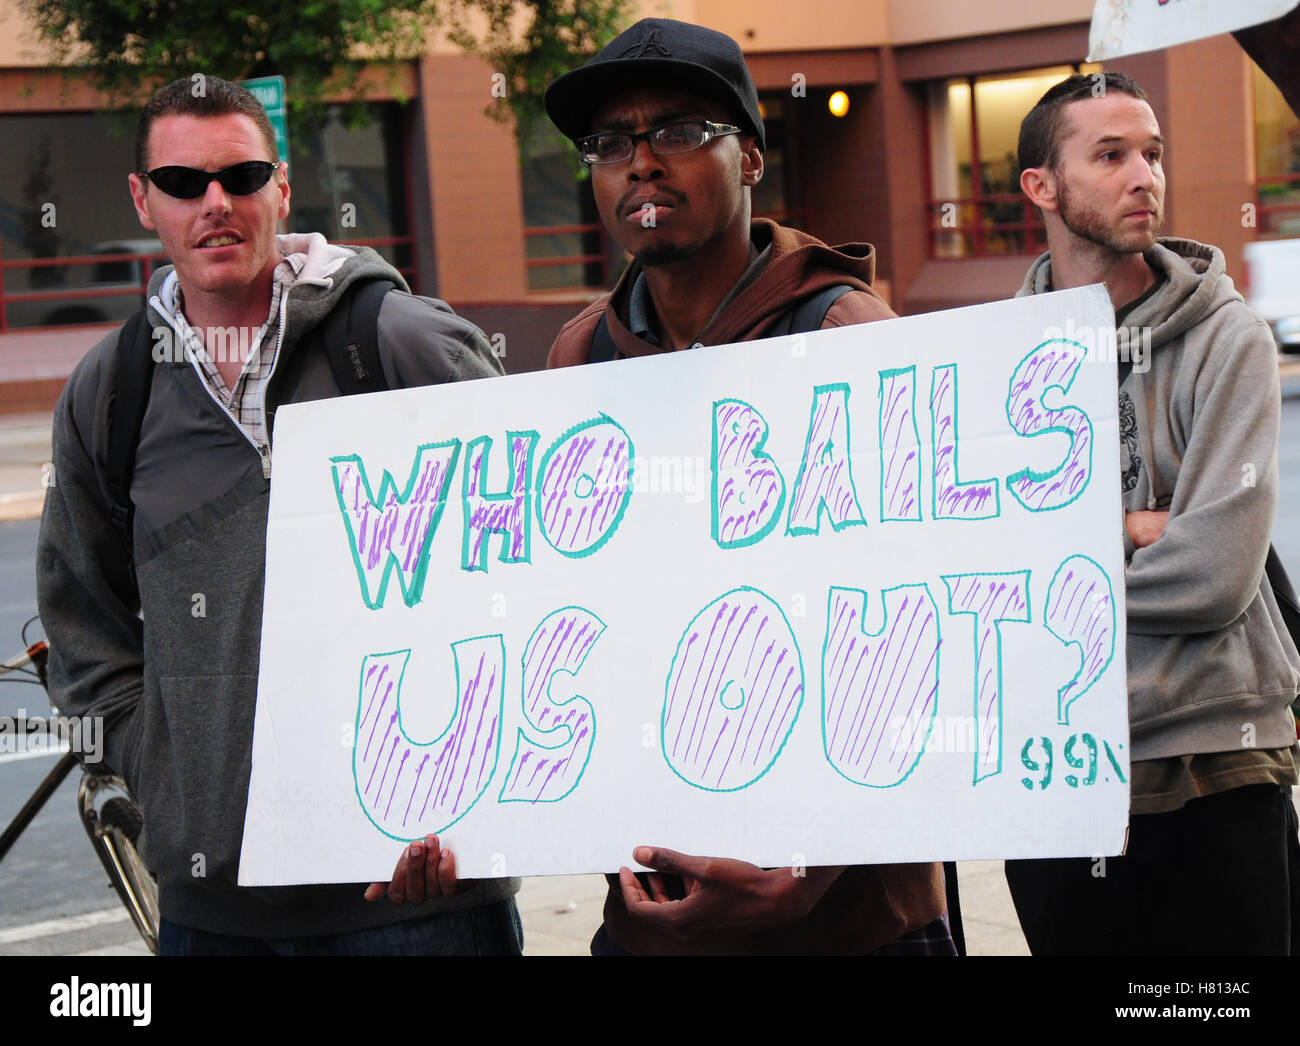 A activist holding a sign reading 'who bails us out 99%' at a march against the big wall street bailout. - Stock Image